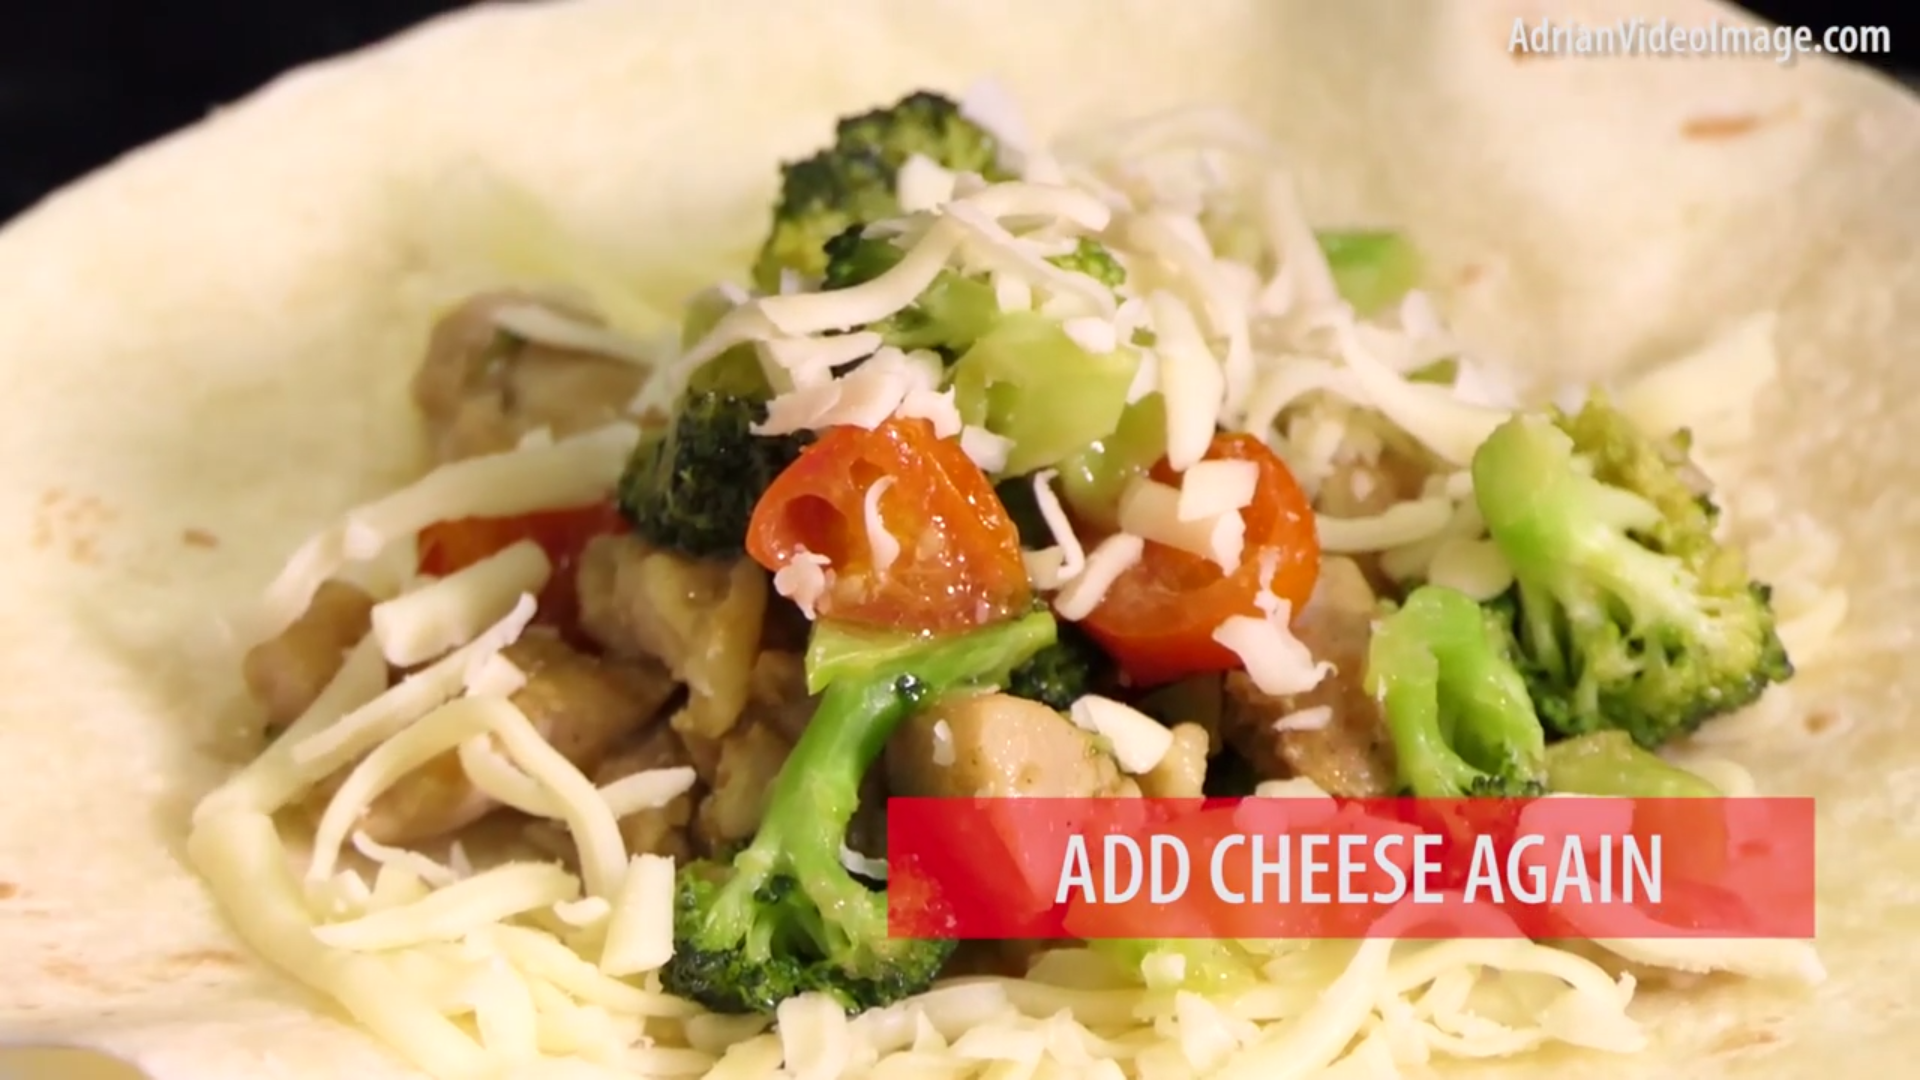 Step 8 - Add More Cheese